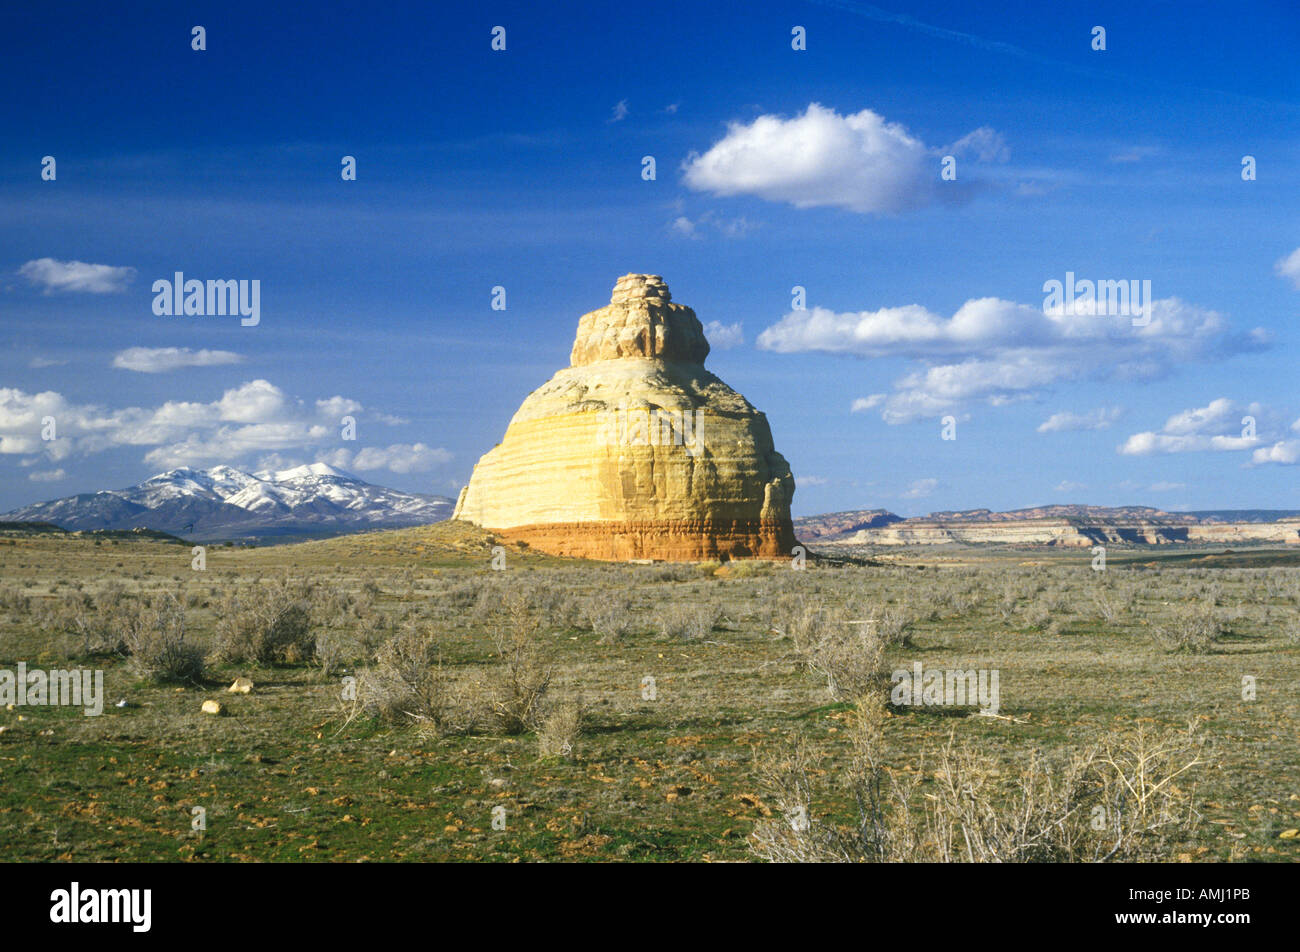 Rock formation in southern UT - Stock Image